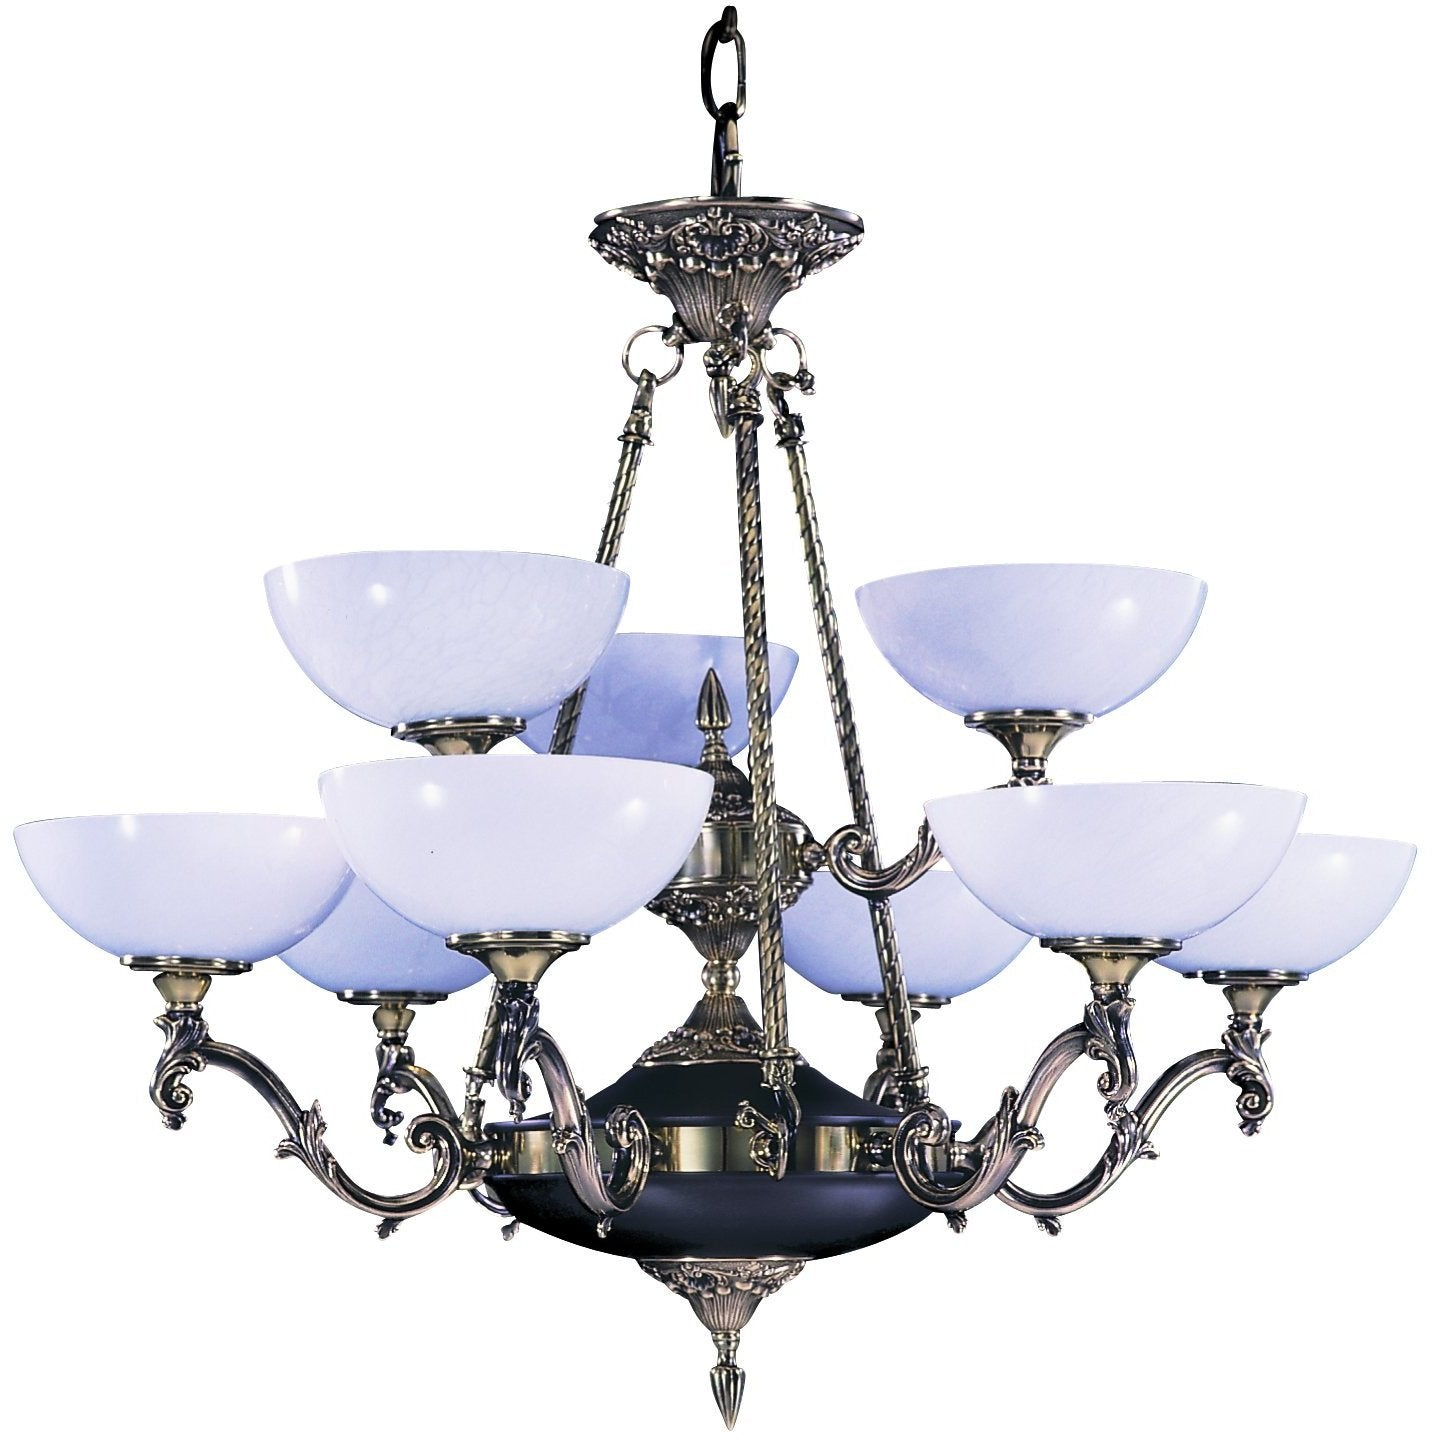 Framburg Chandeliers French Brass 9-Light French Brass Napoleonic Dining Chandelier by Framburg 8409